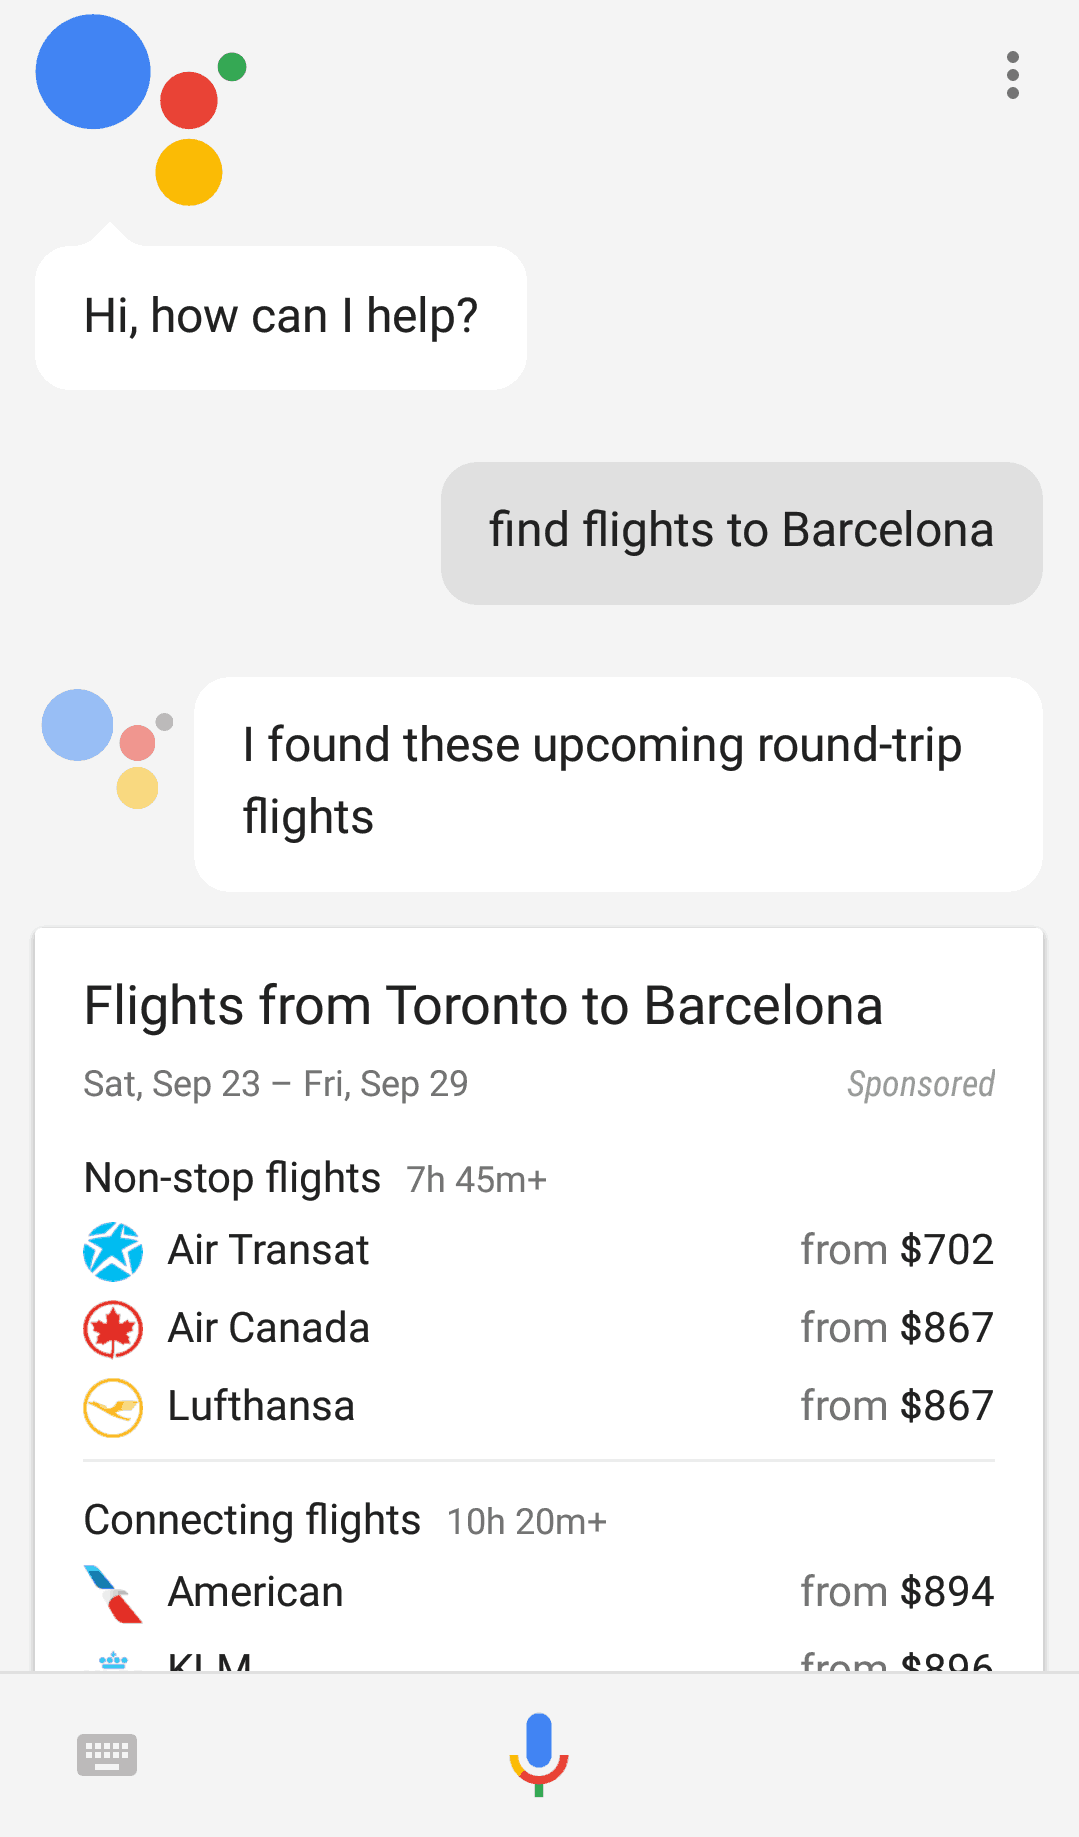 An example of Google Assistant's interface